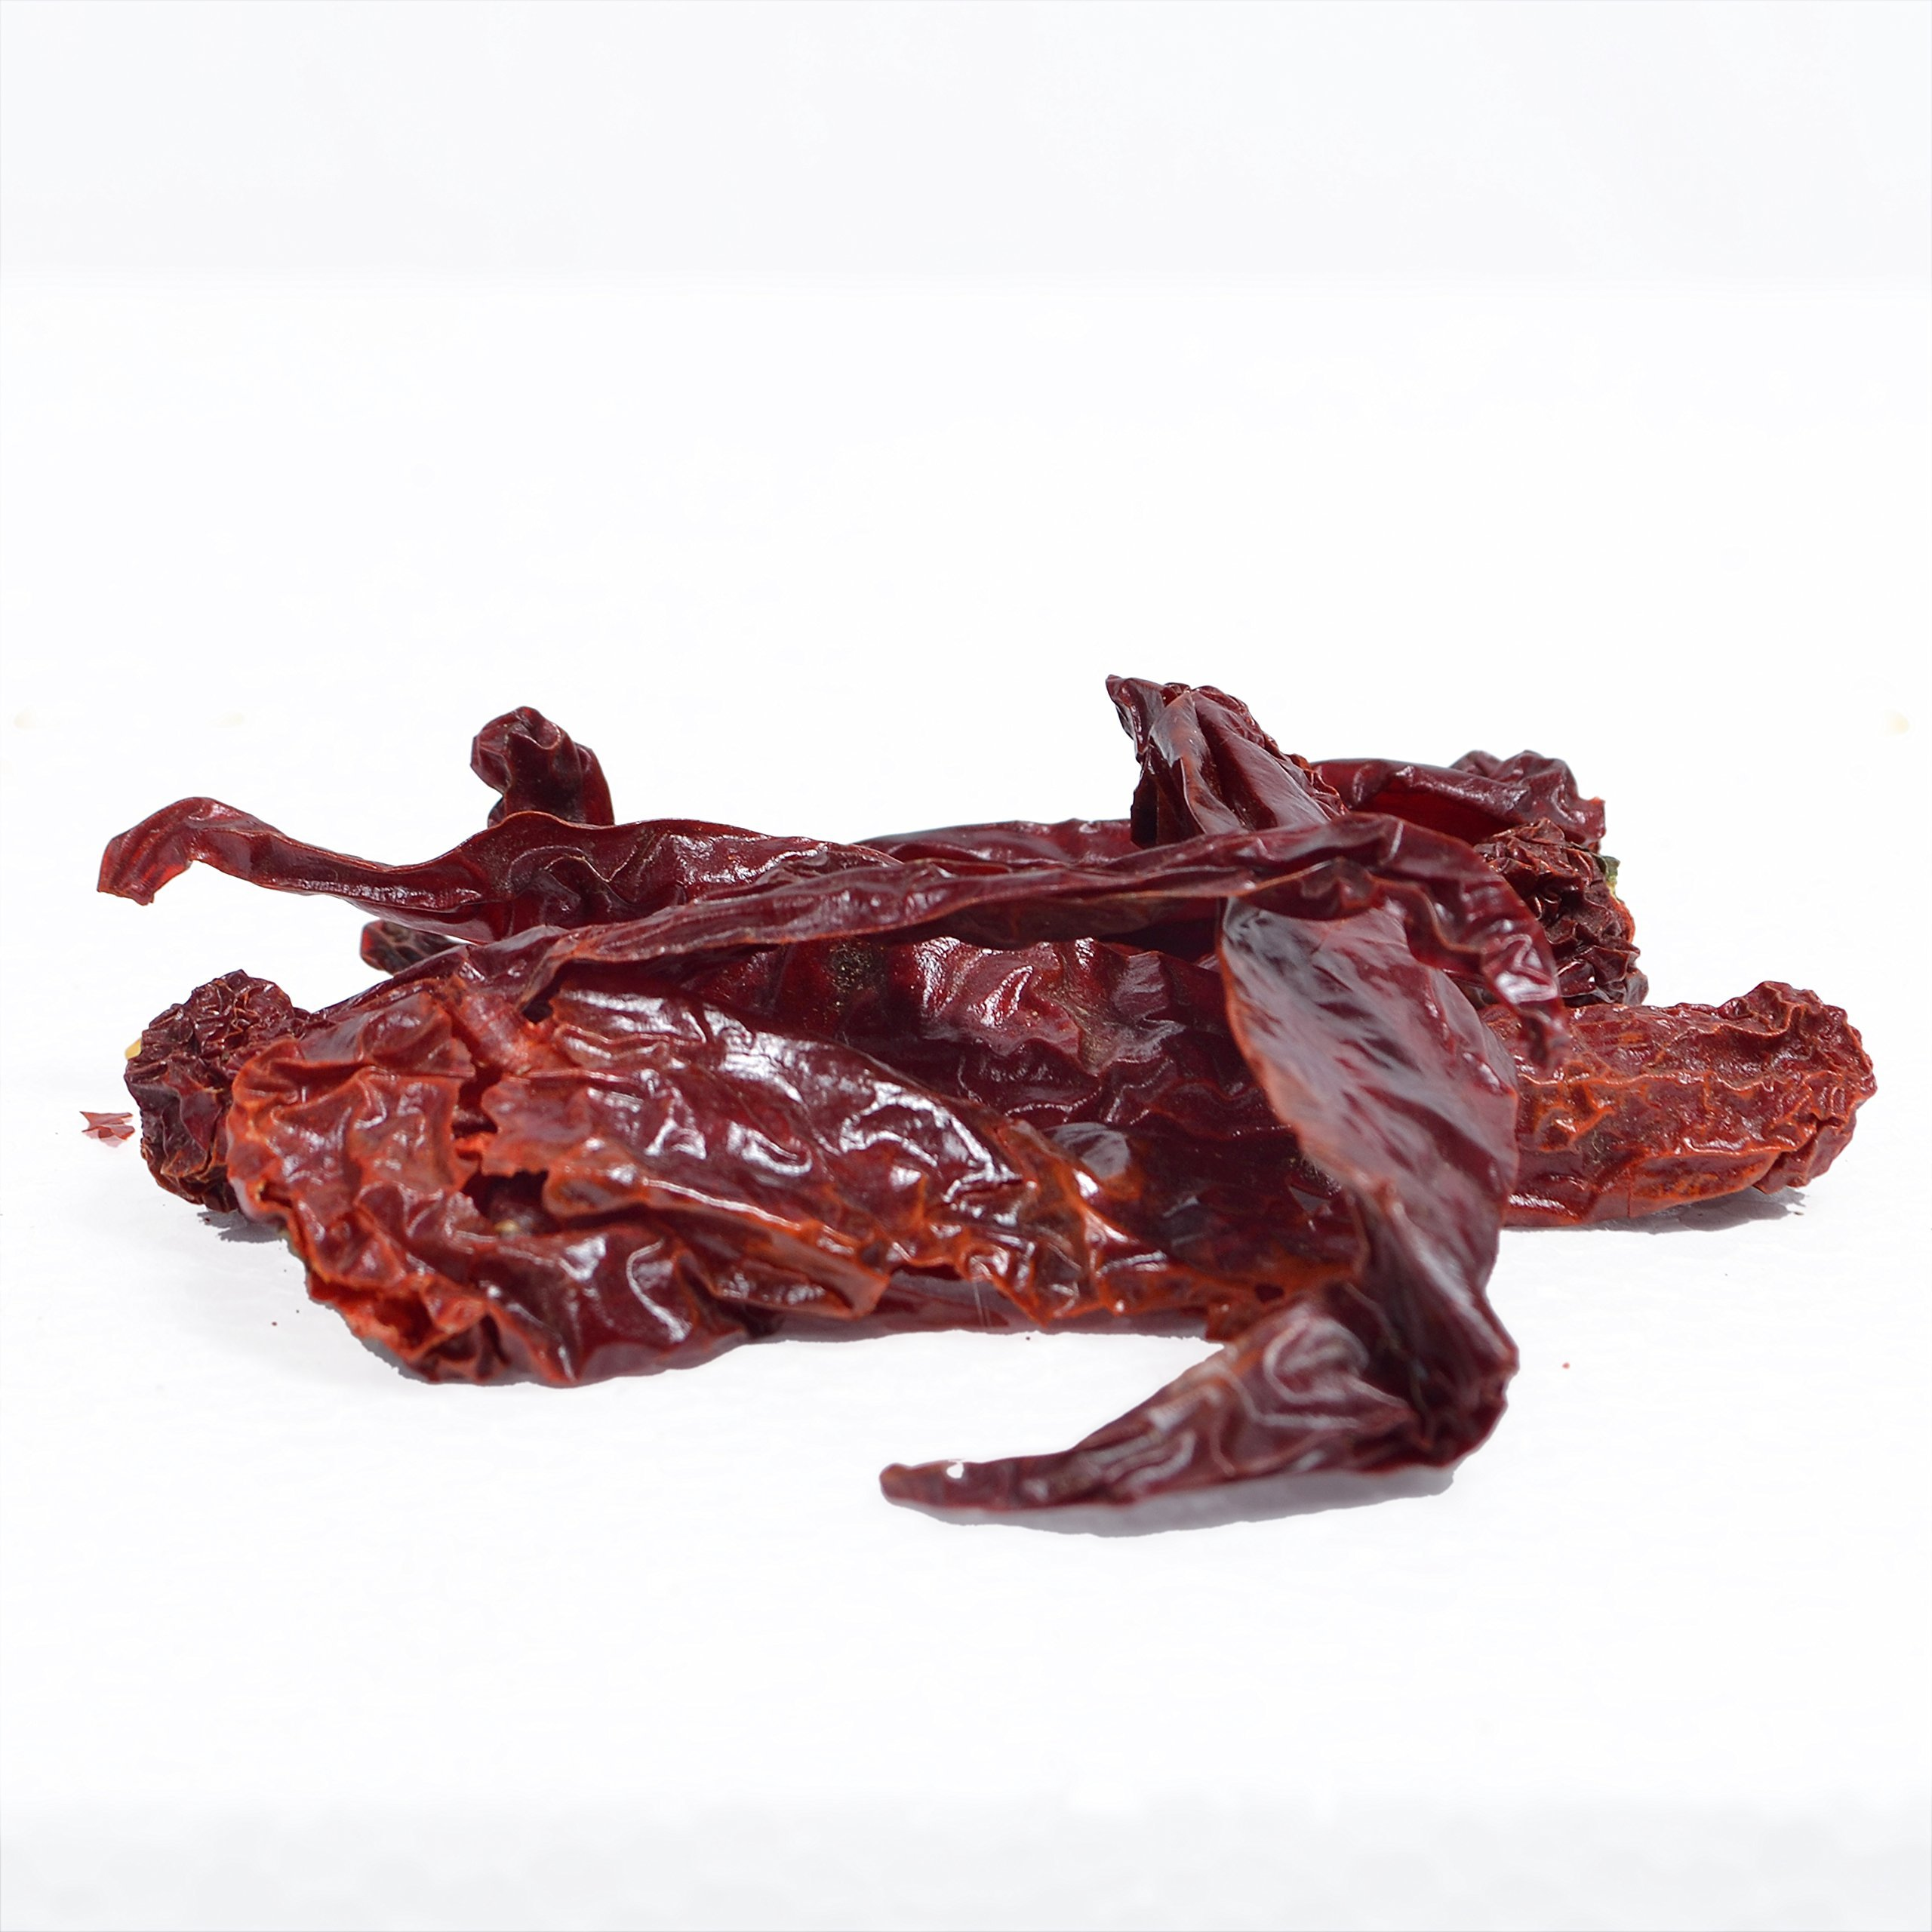 Leeve Dry Fruits Fresh Dried Kashmiri Chilli - 400 Grams by Leeve Dry Fruits (Image #4)